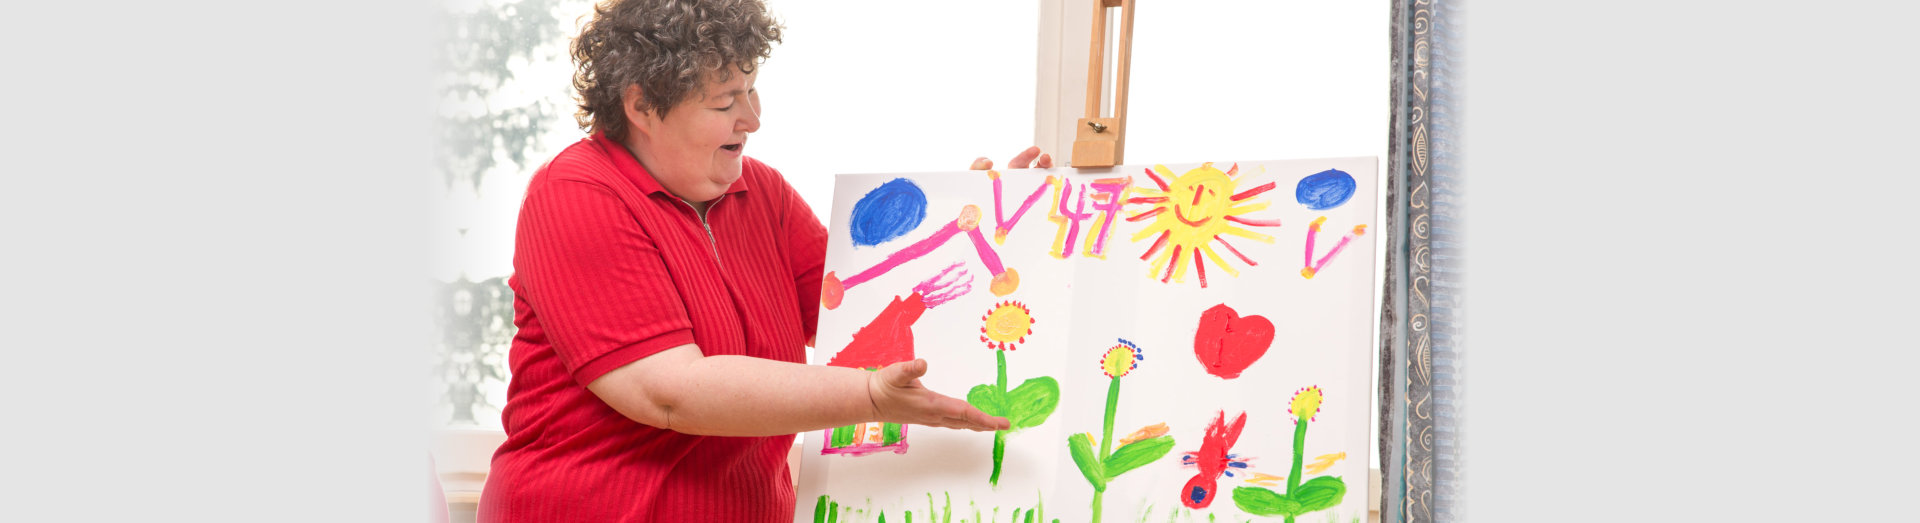 mentally disabled woman showing her painting